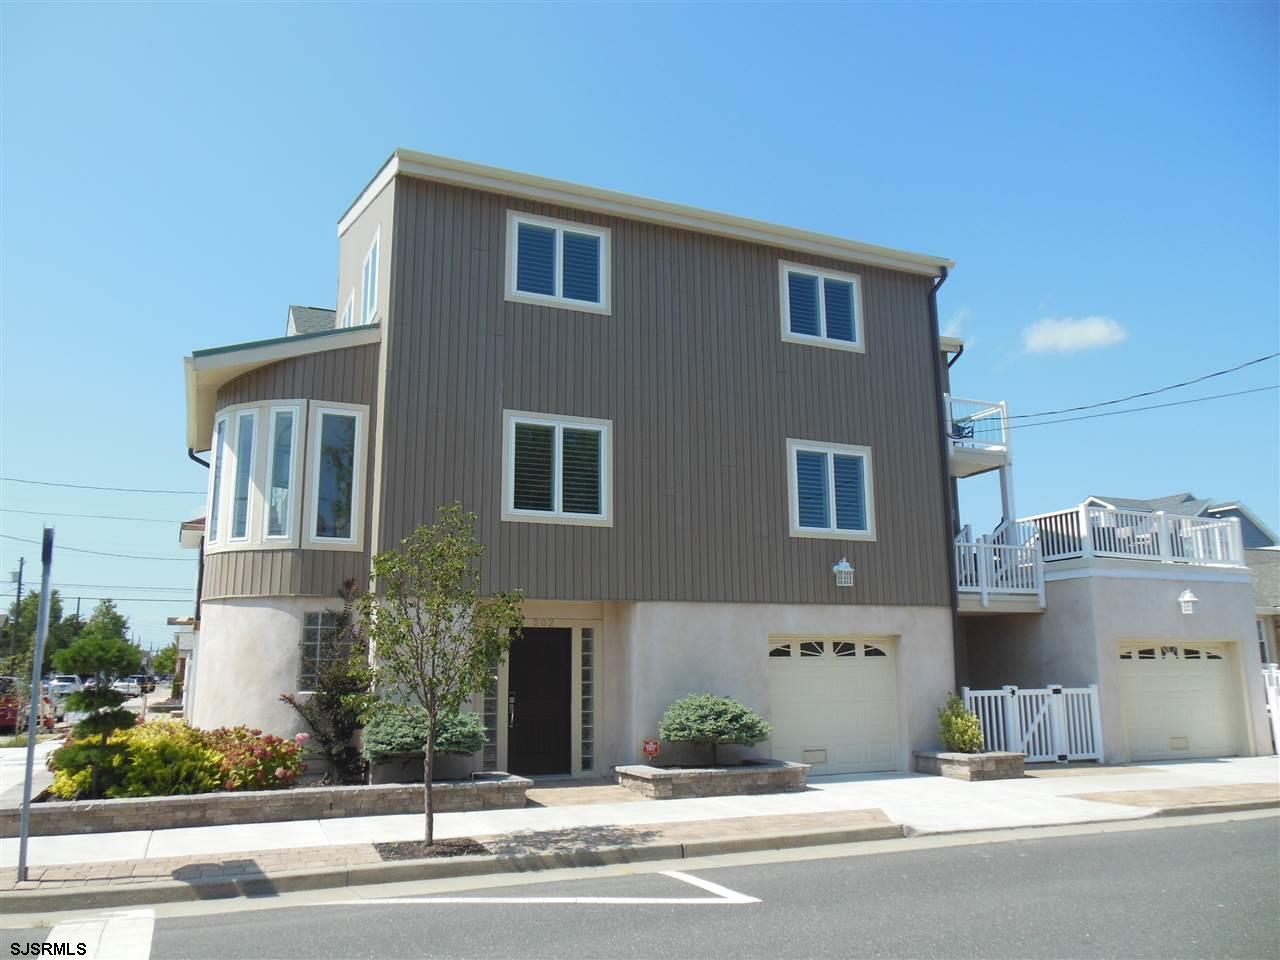 OCTOBER 12 - NOVEMBER 15, 2021. Enjoy beautiful sunsets from this 3 BR, 2.5 Bath home. Built in 2015, this newer home has it all - an open layout, beautiful kitchen and bathrooms, and a two car garage. Great for entertaining, two decks with views of the bay and a game room with ping pong table.  For music lovers there is also a SONOS sound system that can play 3 channels in different areas of the house.  Beach chairs, beach tags and basic cable with wifi included in the rent.  Walking distance to the boardwalk.